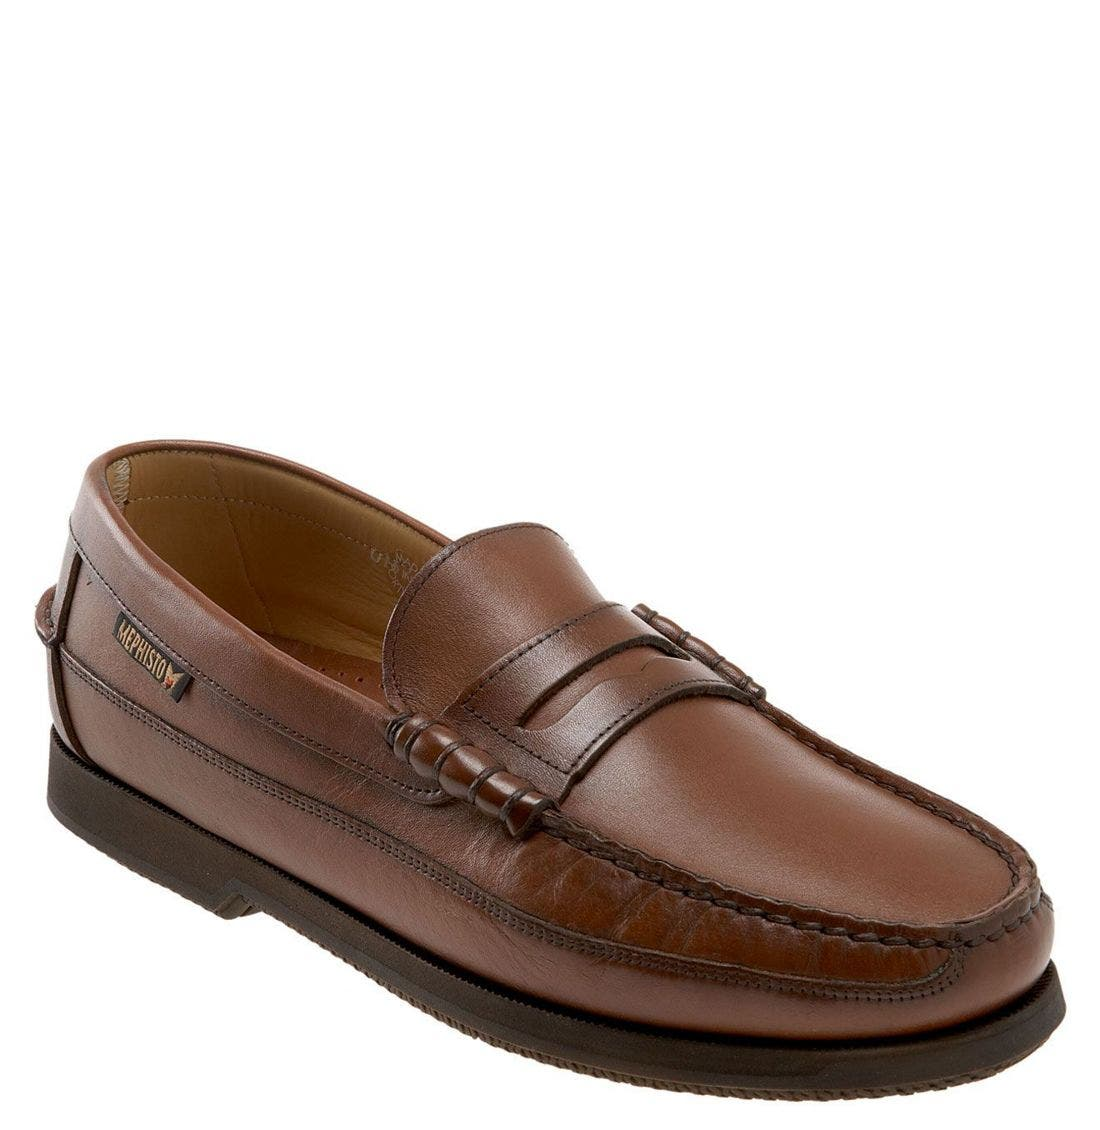 Alternate Image 1 Selected - Mephisto 'Cap Vert' Penny Loafer